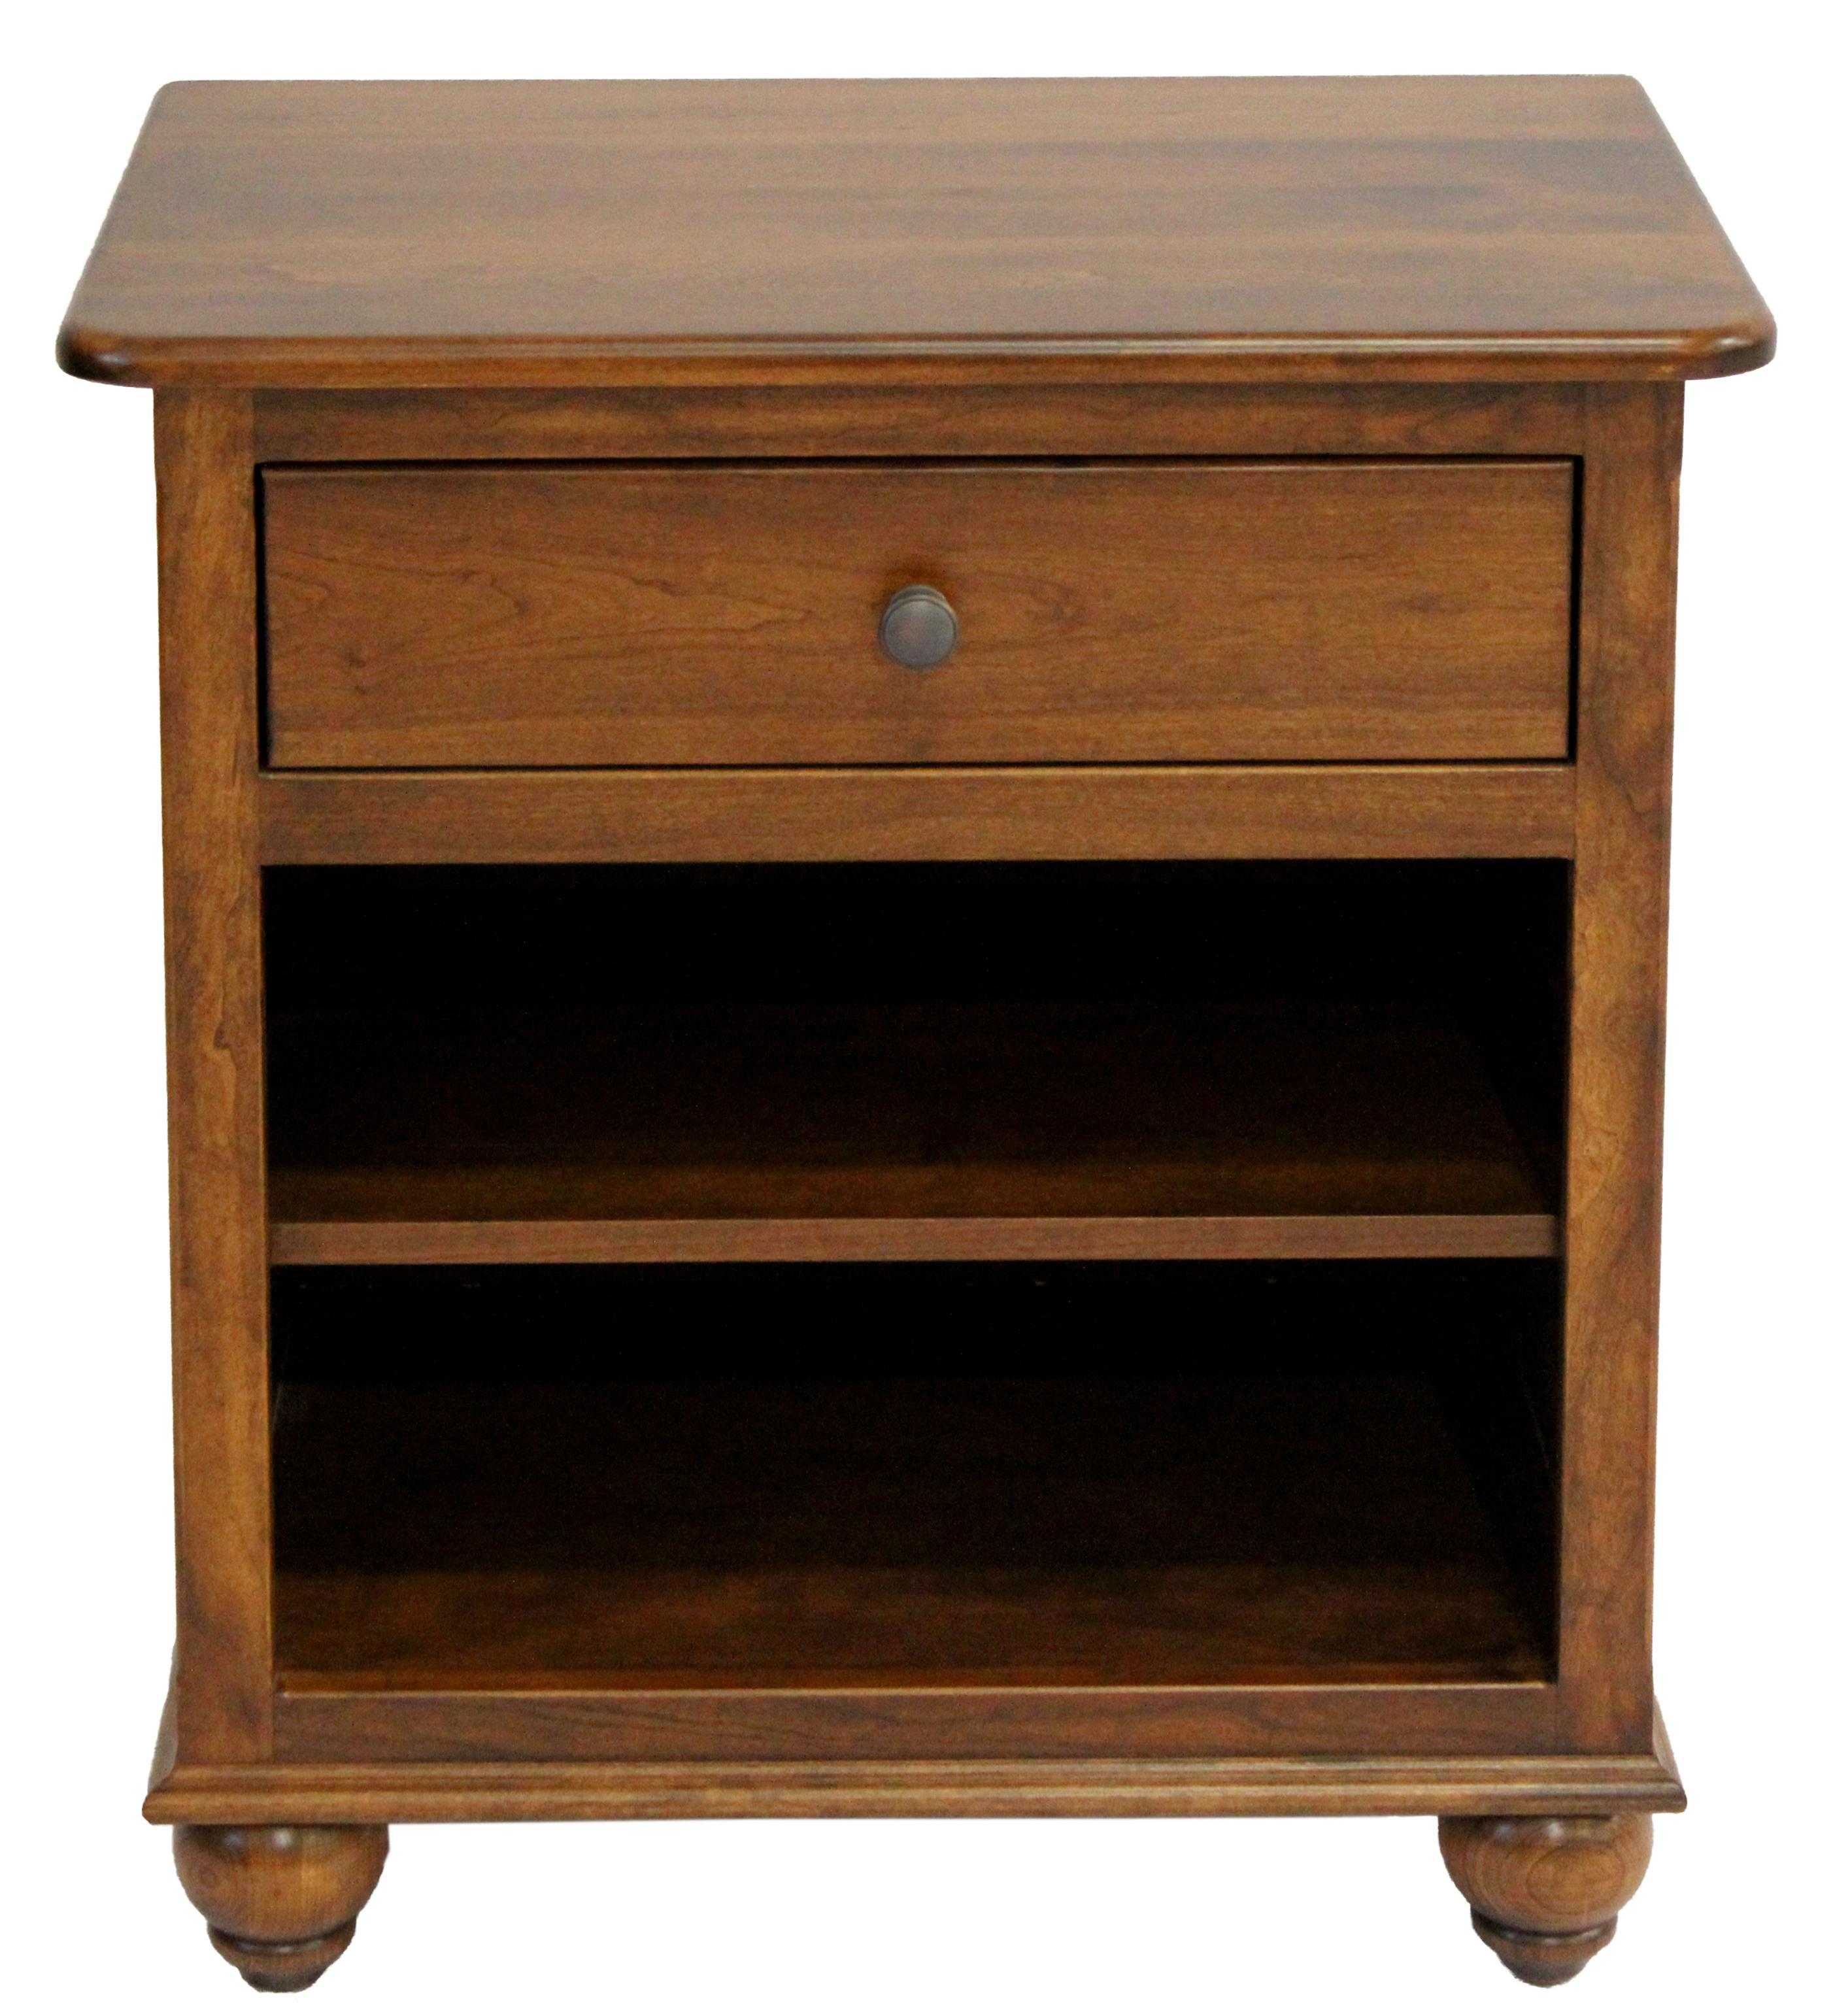 Covington Covington Nightstand at Morris Home